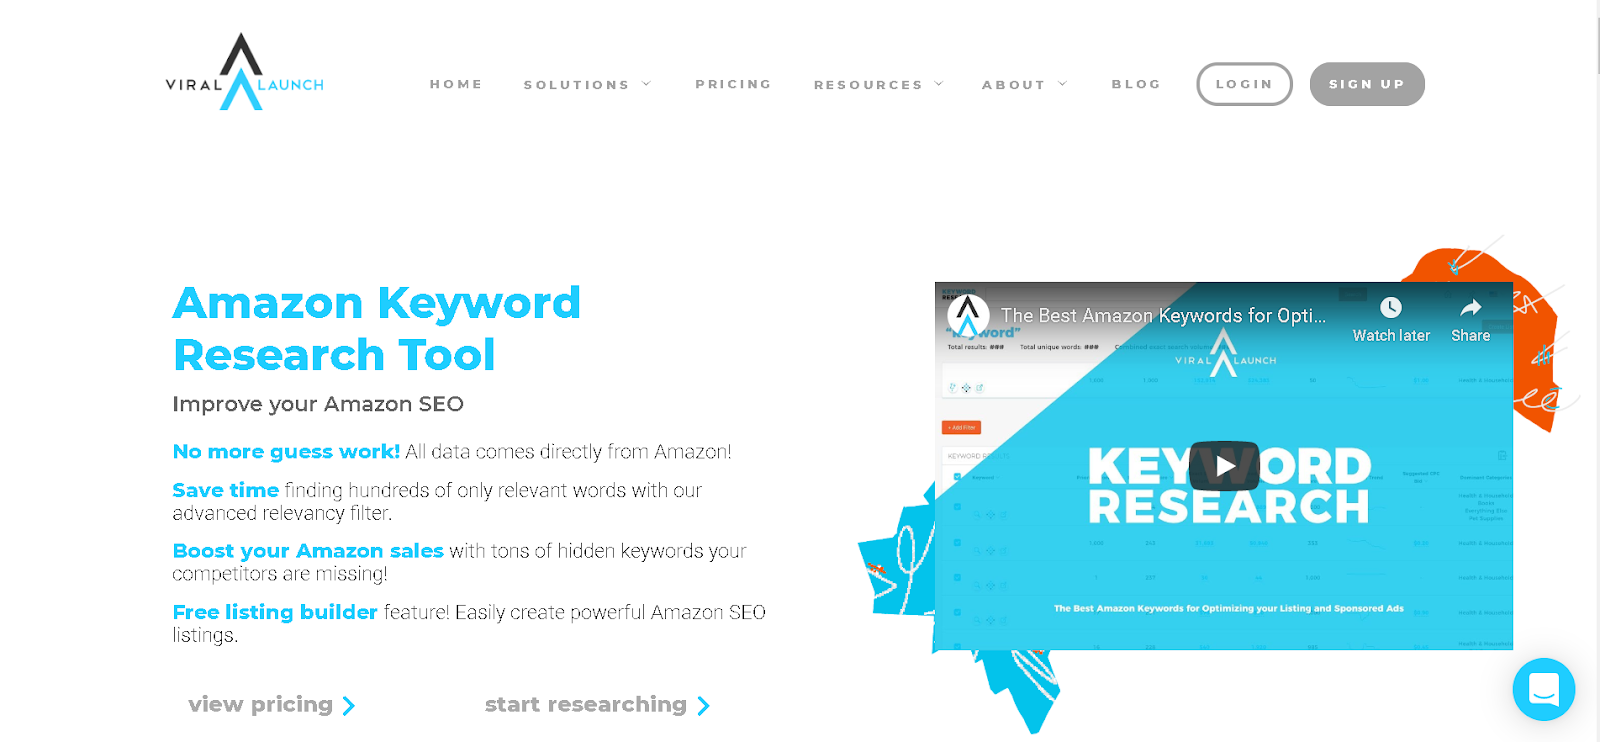 Amazon Keyword Tool 1 Keyword Research with Merchant Words by Viral Launch